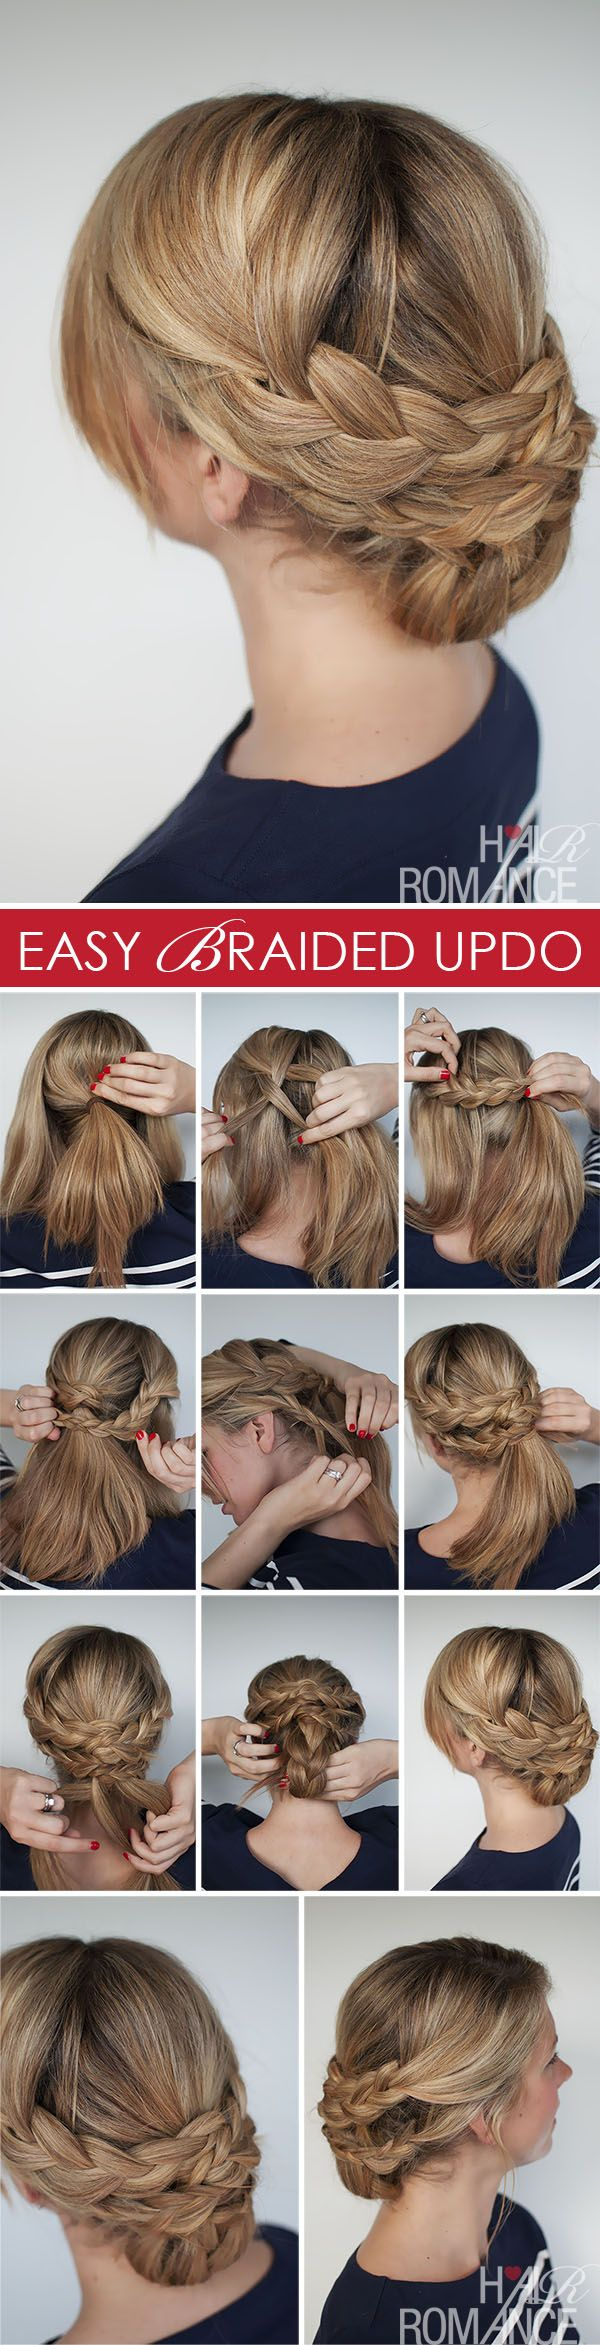 Hairstyle How-to: Easy braided updo tutorial - Hair Romance